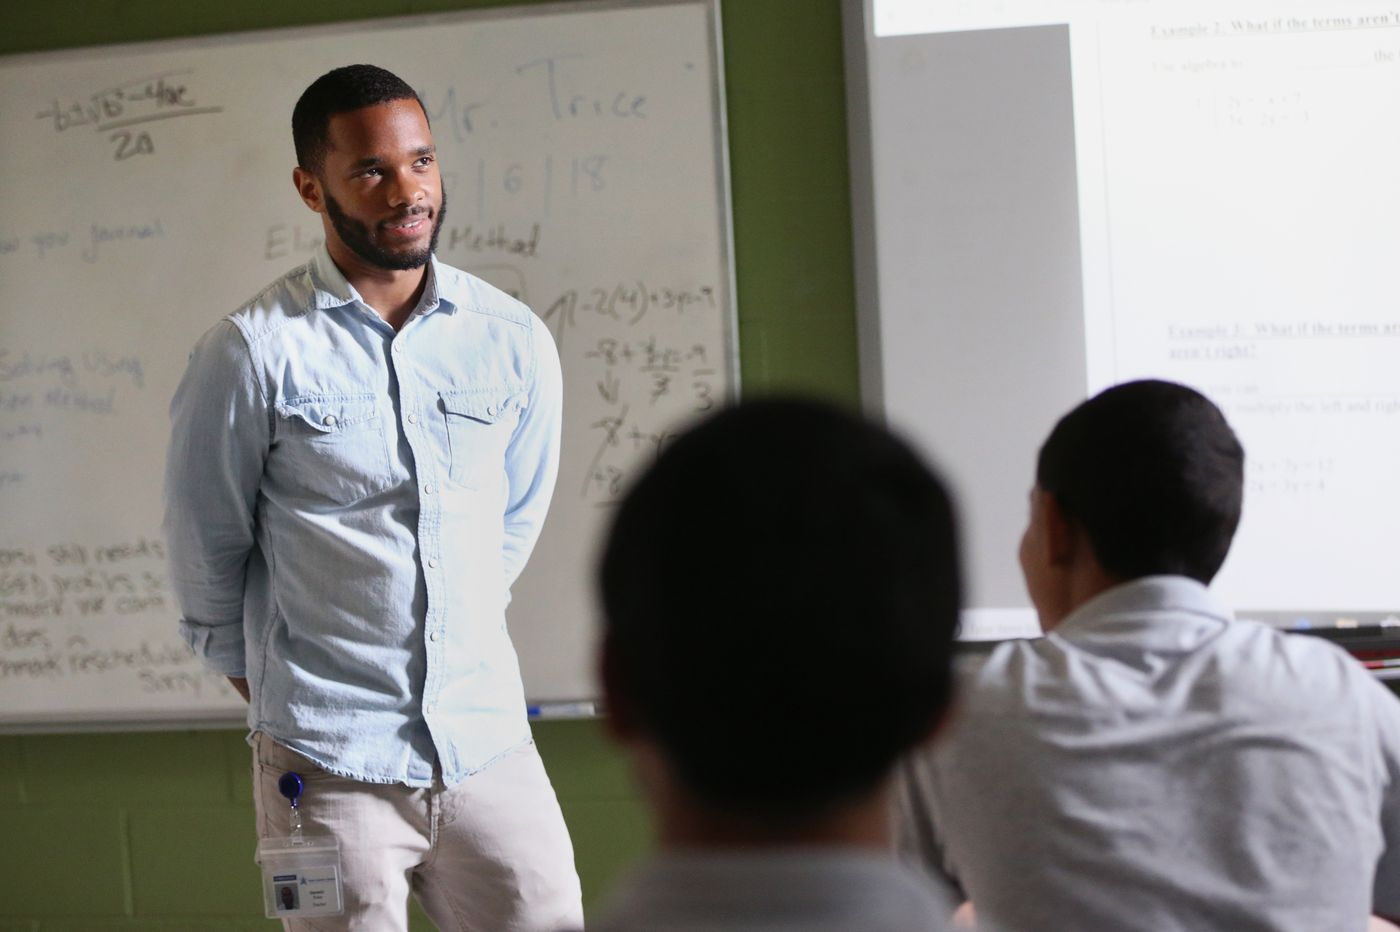 A former drug dealer made good and became a Philly teacher. So why is he thinking of leaving the profession?